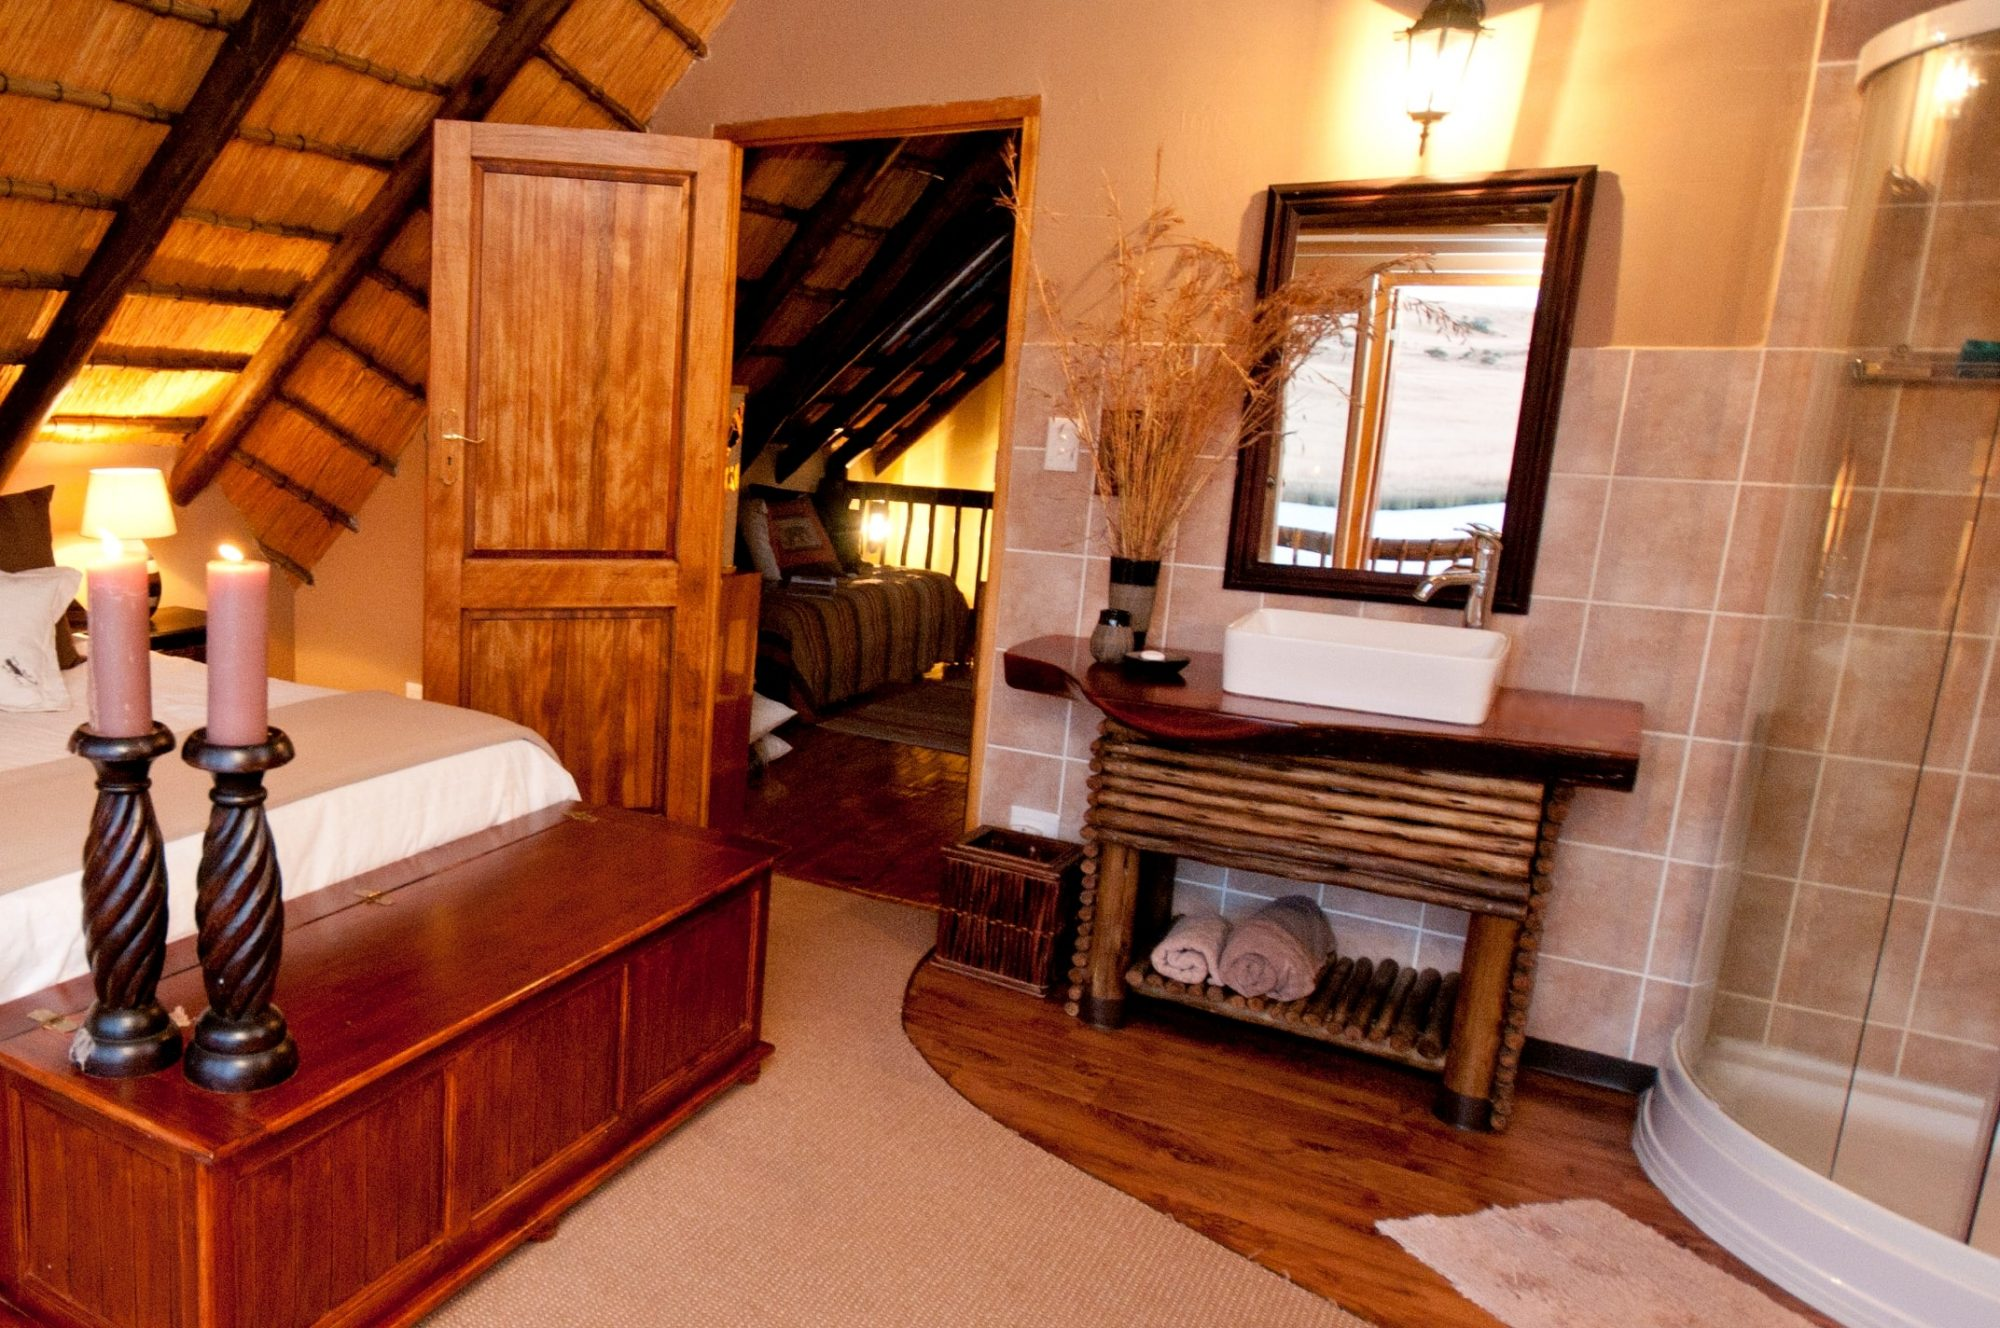 Thatcher's Rest, Self-Catering Cottage - Ladysmith, KwaZulu-Natal (2)